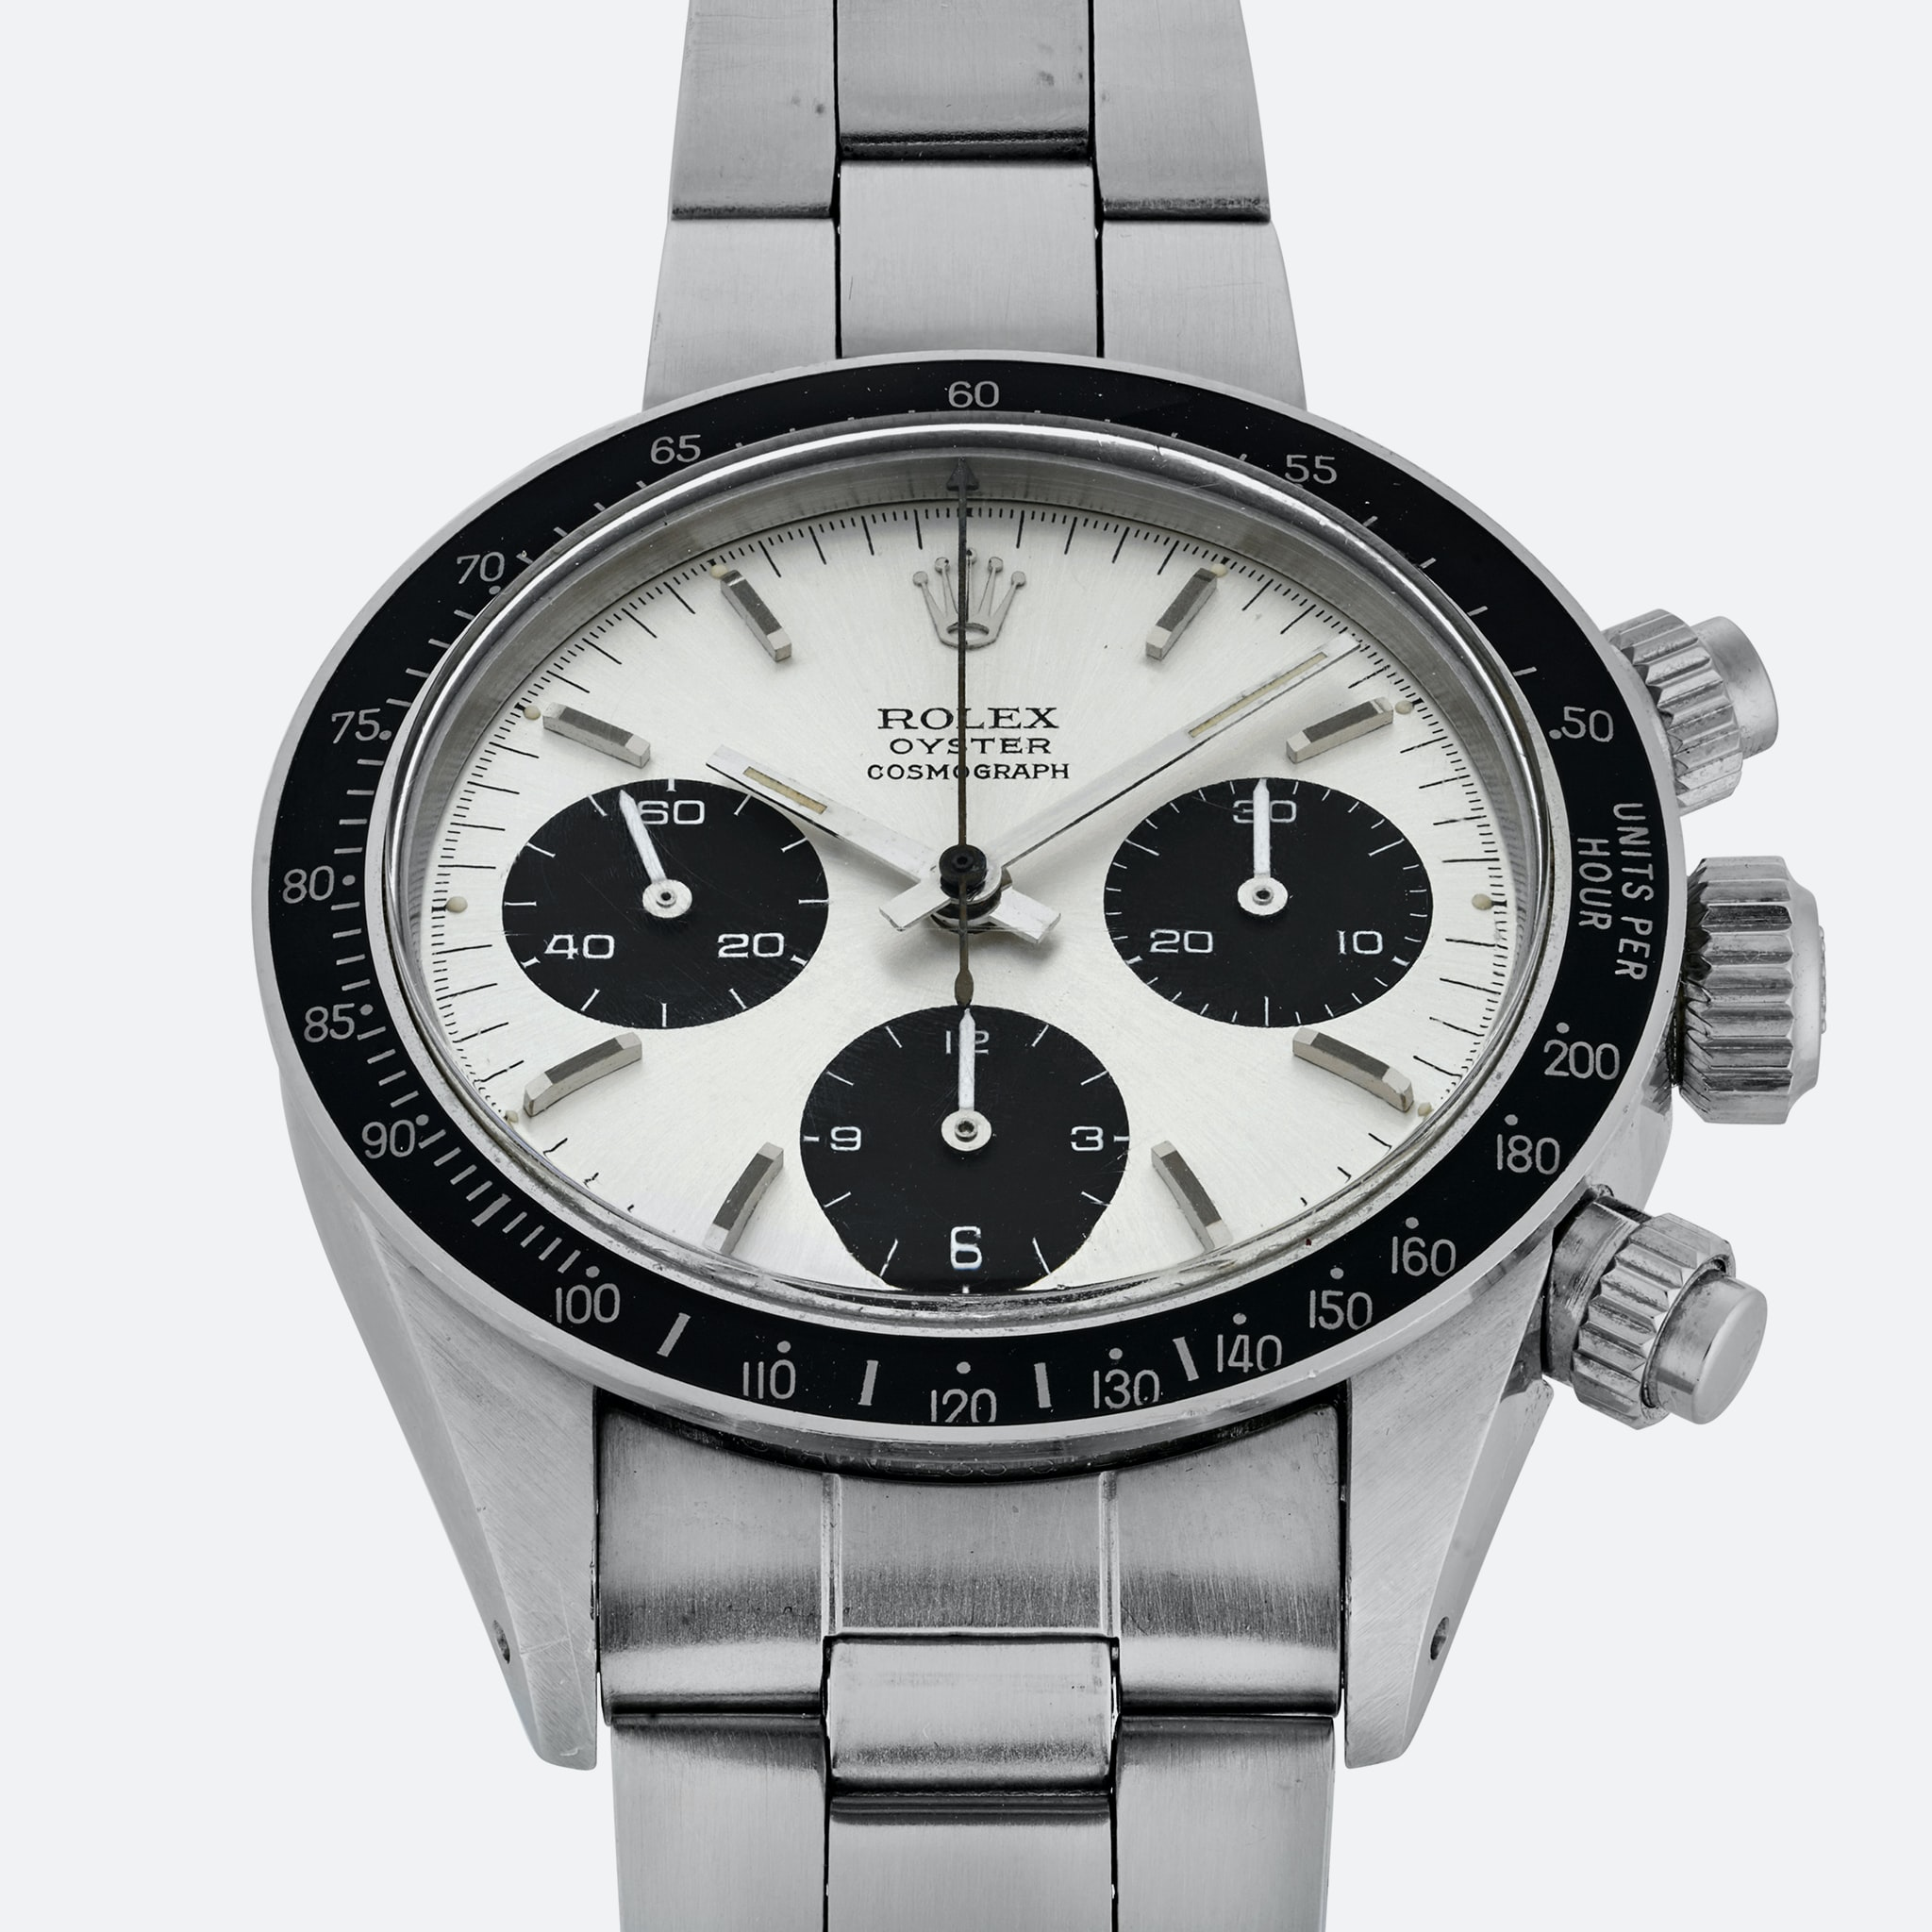 In The Shop: A 1940s Breitling Chronomat Reference 769, A 1960s Cornavin Diver, And A 1972 Rolex Daytona Reference 6263 In The Shop: A 1940s Breitling Chronomat Reference 769, A 1960s Cornavin Diver, And A 1972 Rolex Daytona Reference 6263 460 RolexDaytona Low